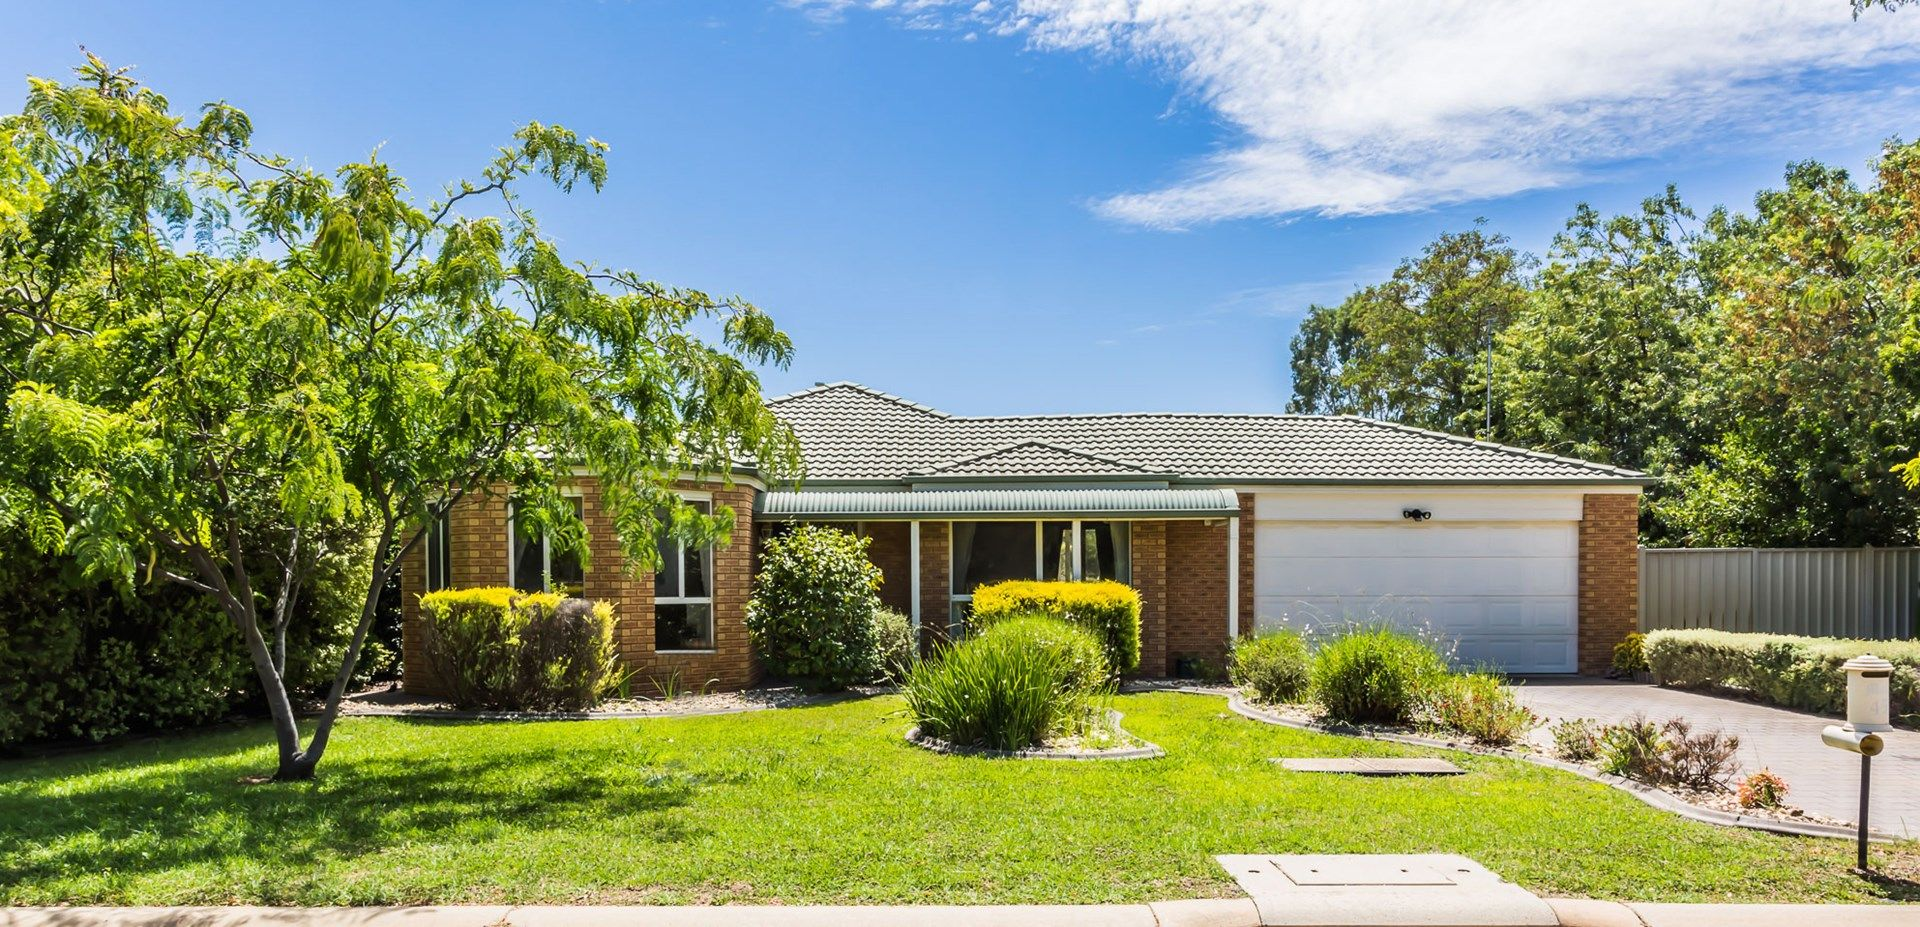 45 Kingfisher  Drive, Moama NSW 2731, Image 0